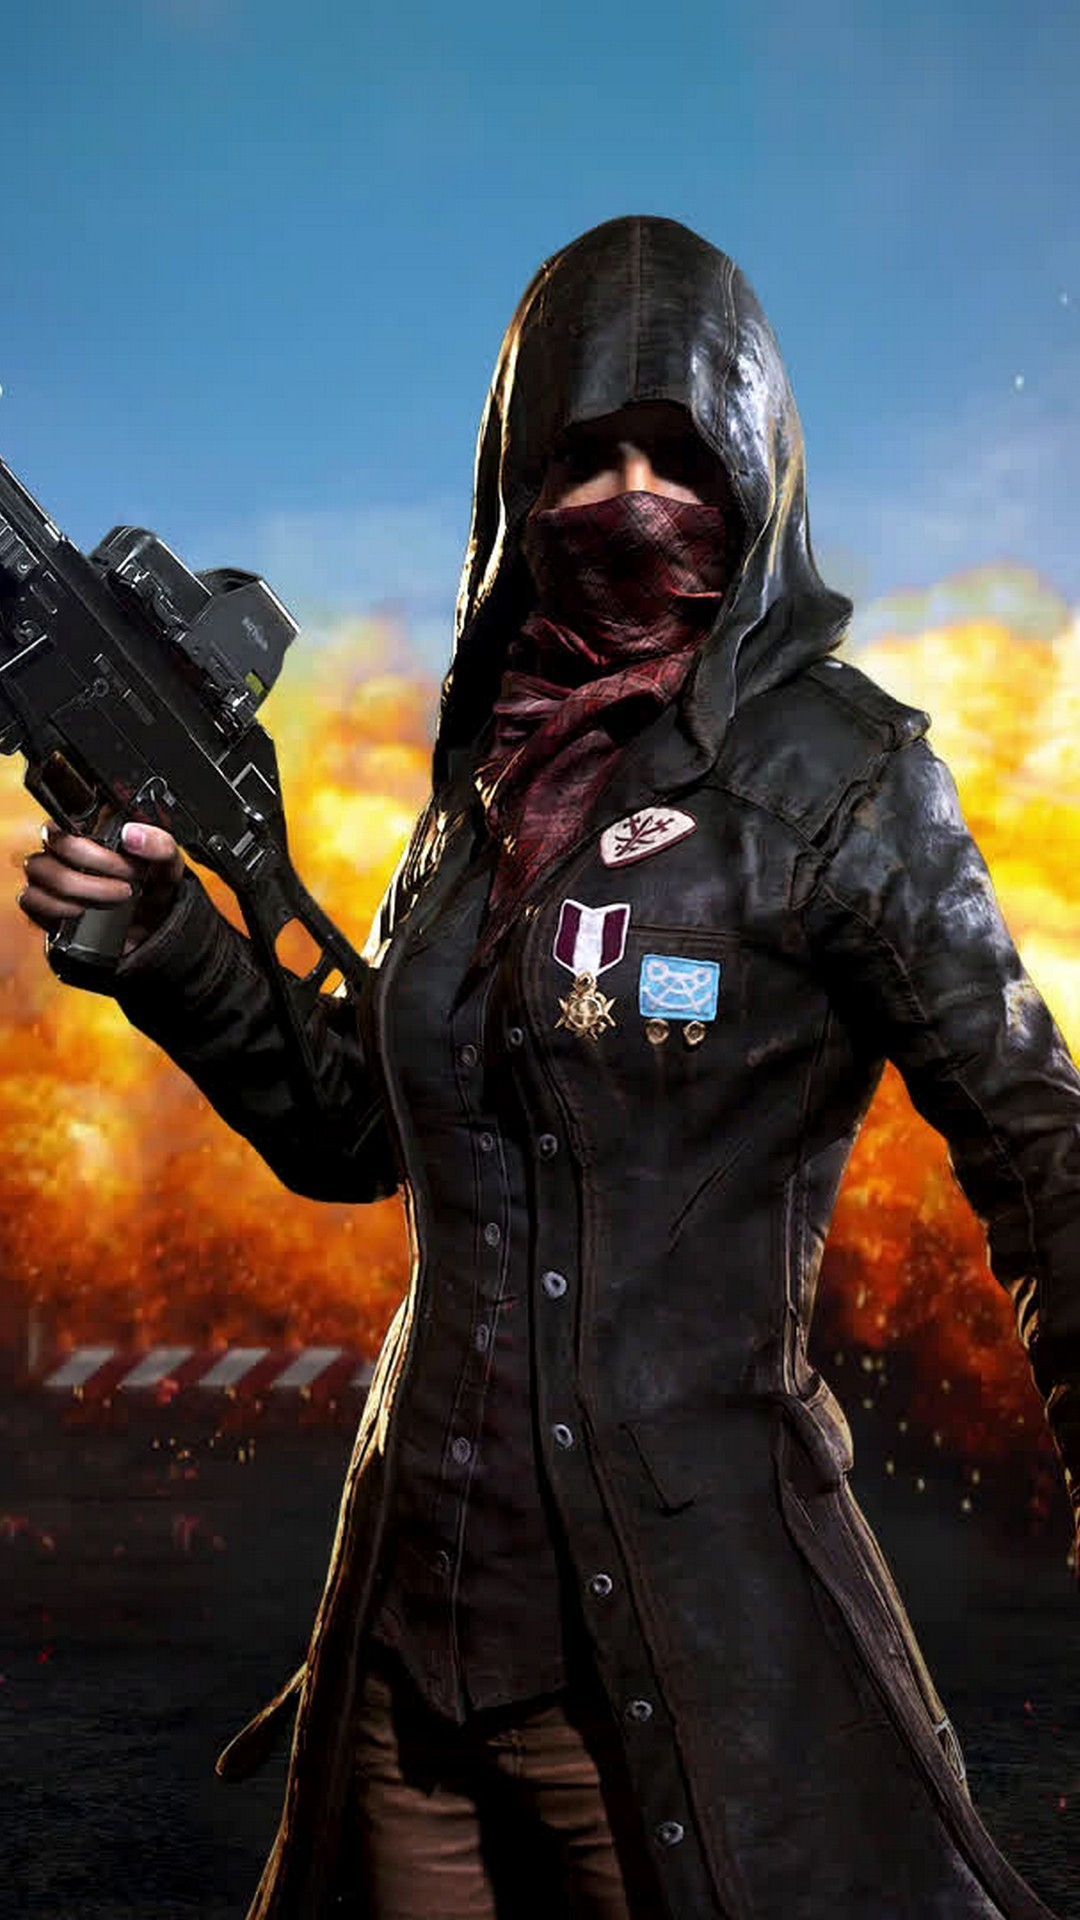 PUBG Mobile iPhone Wallpapers 2020 Cute Wallpapers 1080x1920